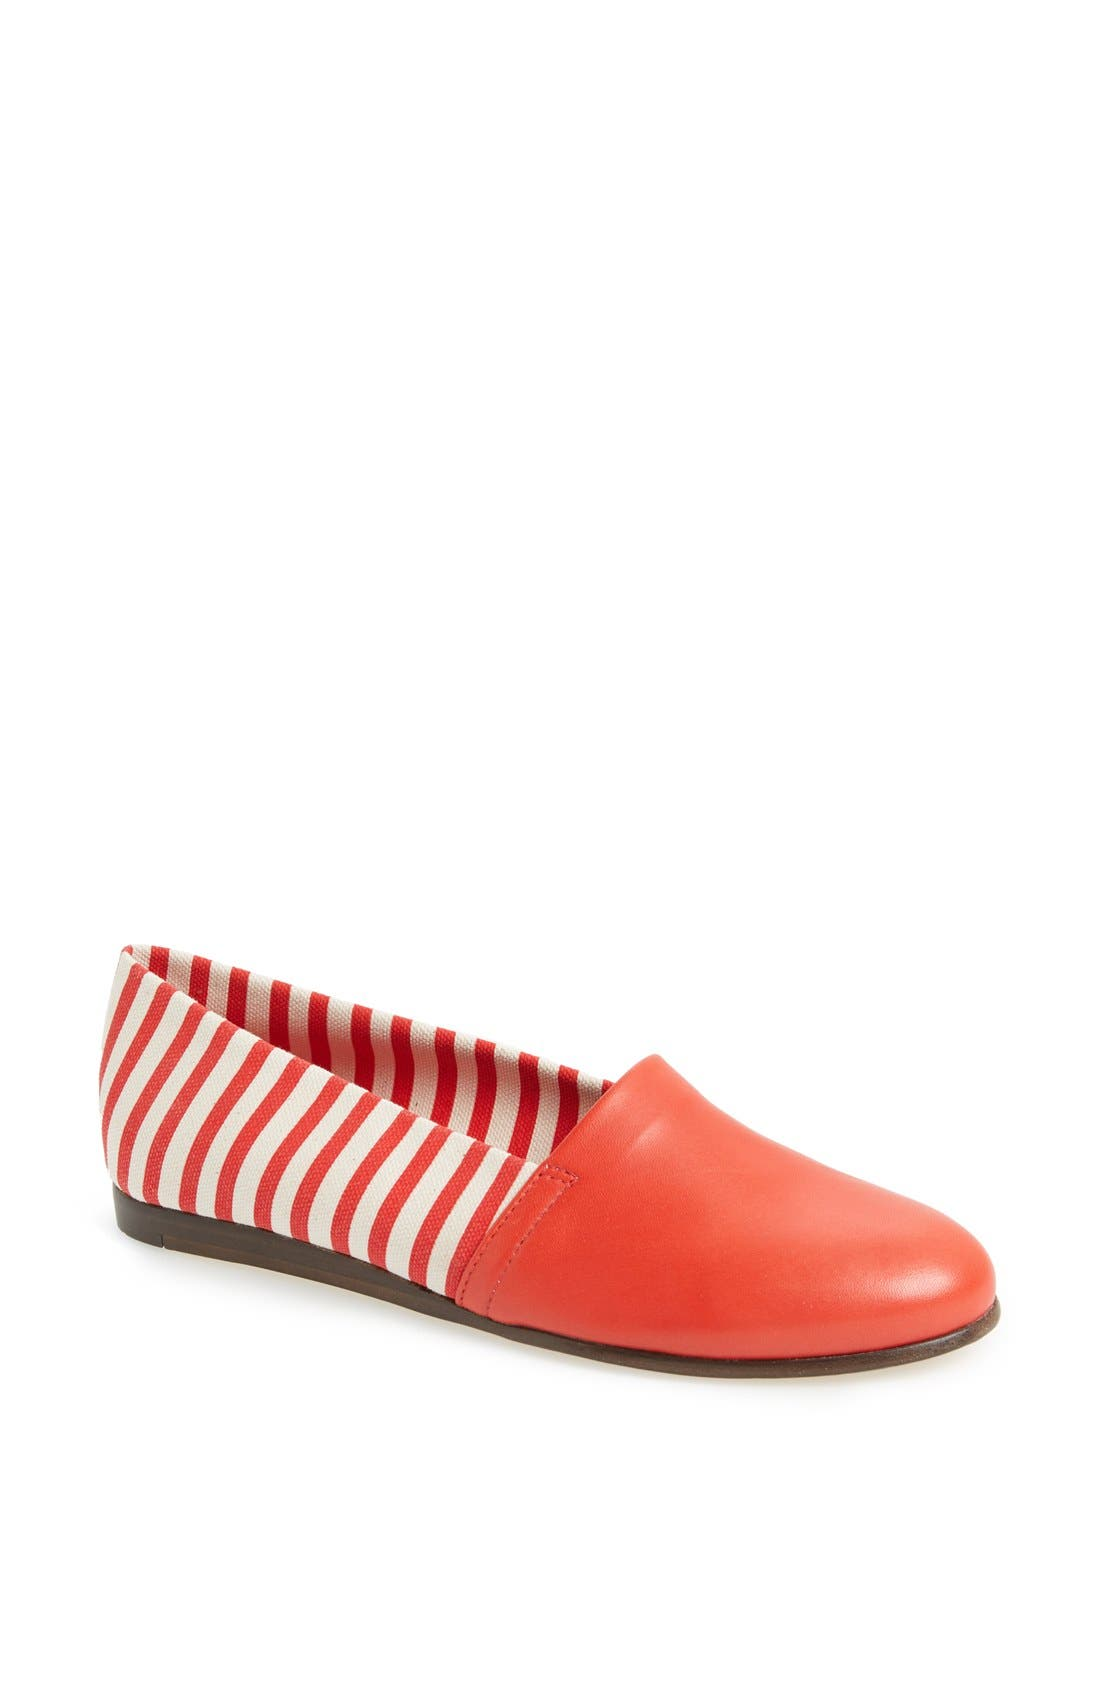 Main Image - CB Made in Italy Stripe Flat Slip-On